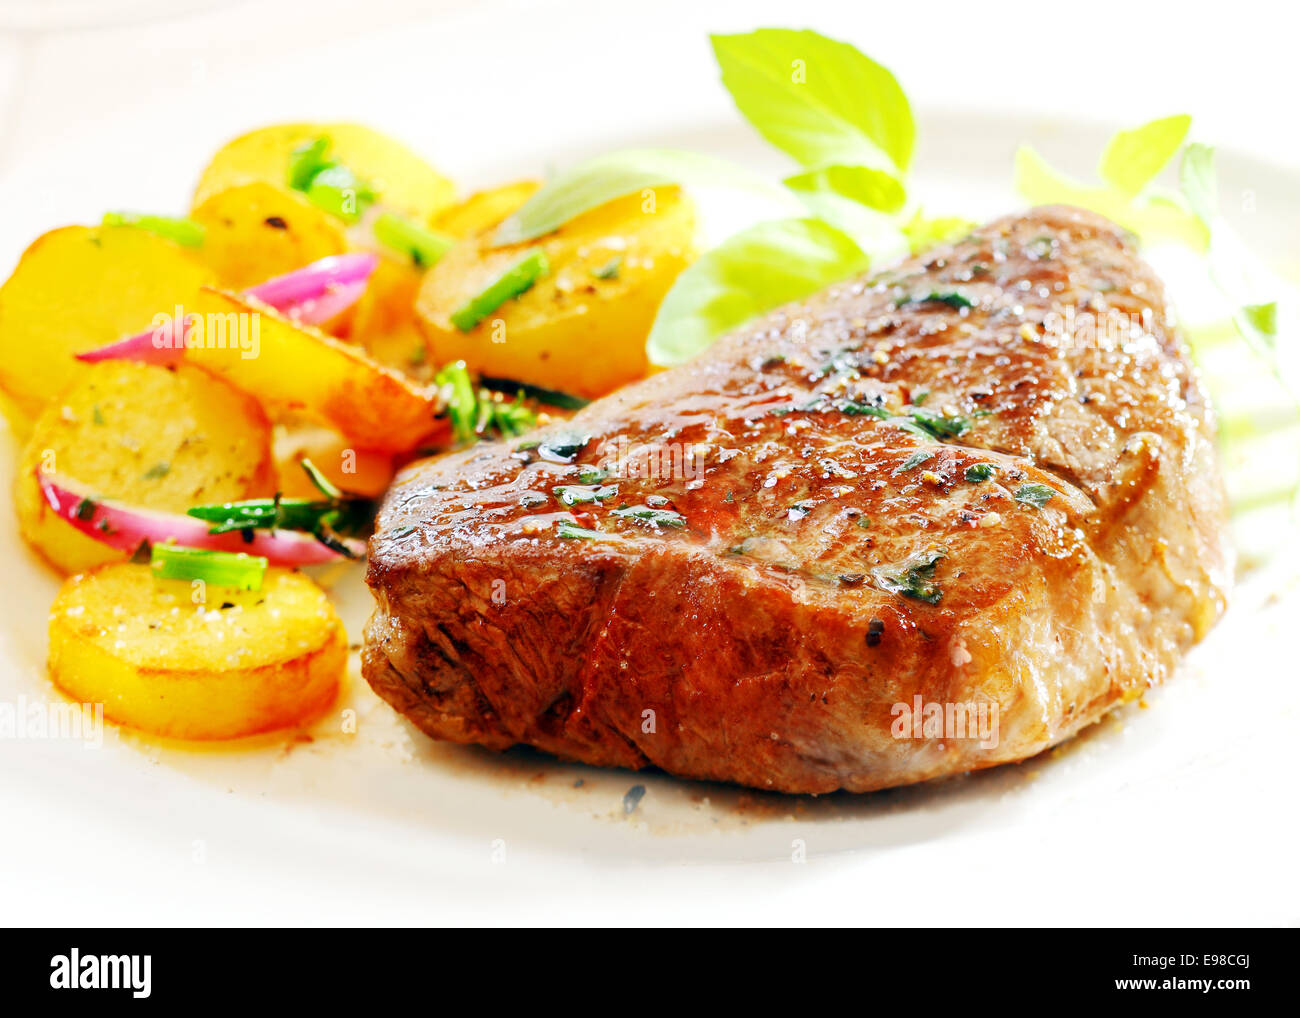 Large portion of thick juicy steak with crisp golden roast potatoes, onion and fresh herbs on a white plate, closeup - Stock Image